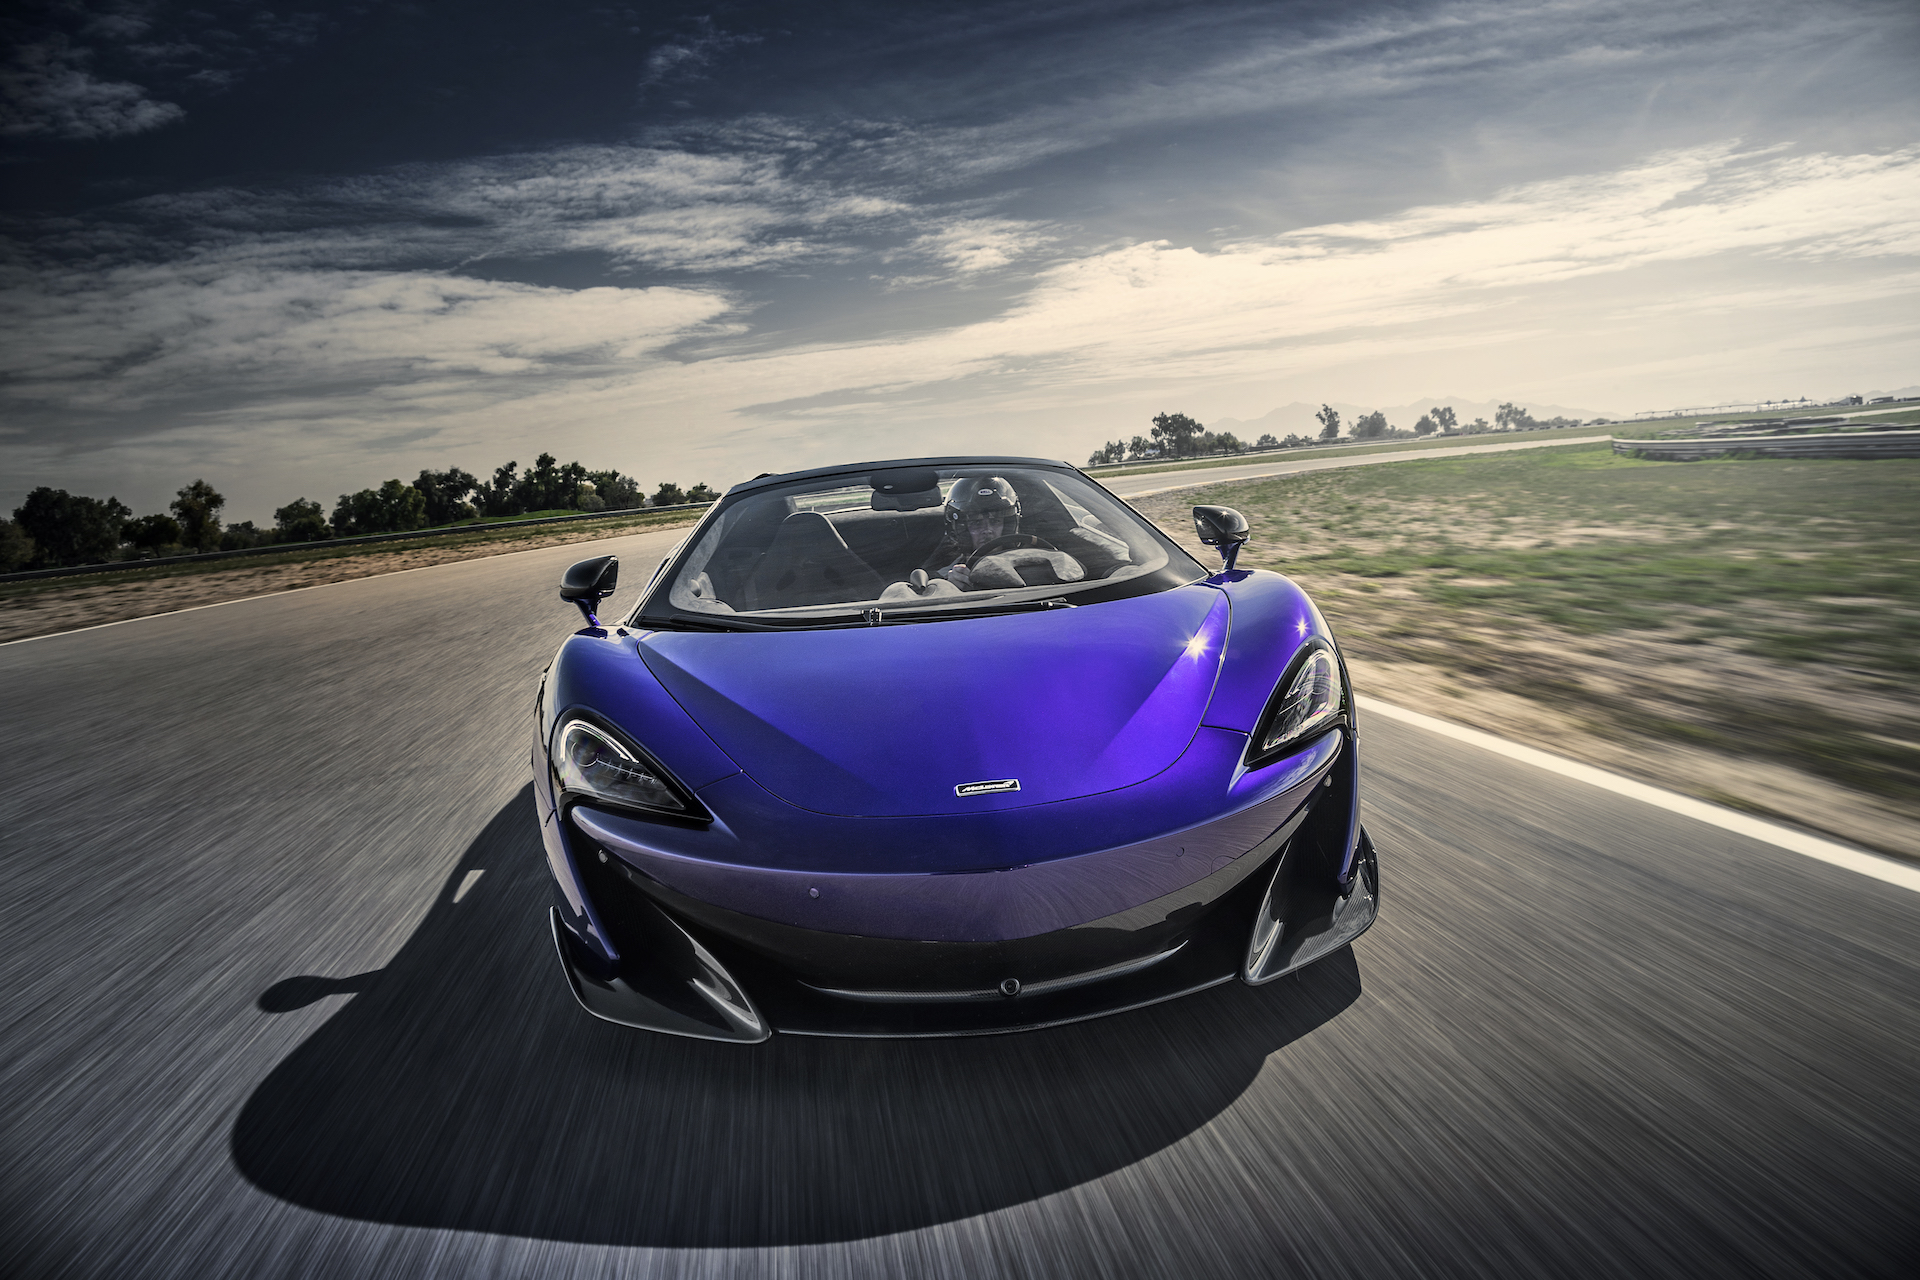 2020 McLaren 600LT Spider (Color: Lantana Purple) Front Wallpaper (6)